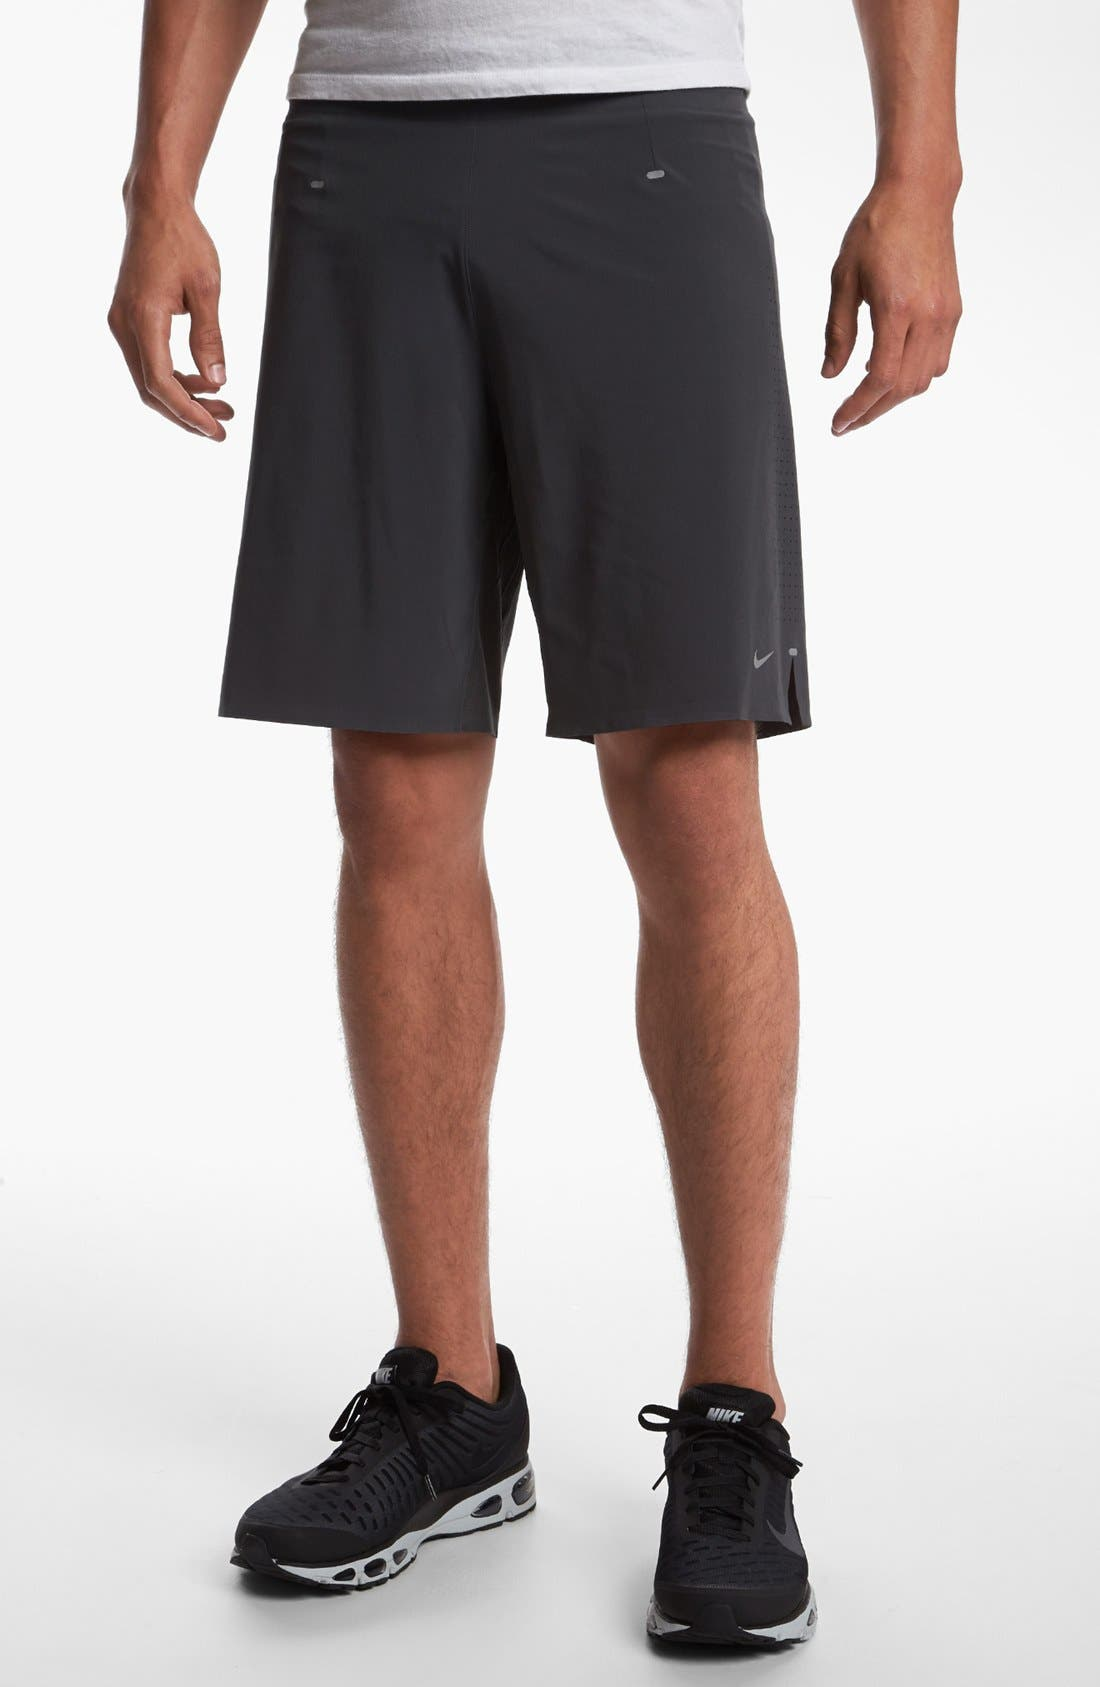 Alternate Image 1 Selected - Nike 'Instinct' Stretch Woven Running Shorts